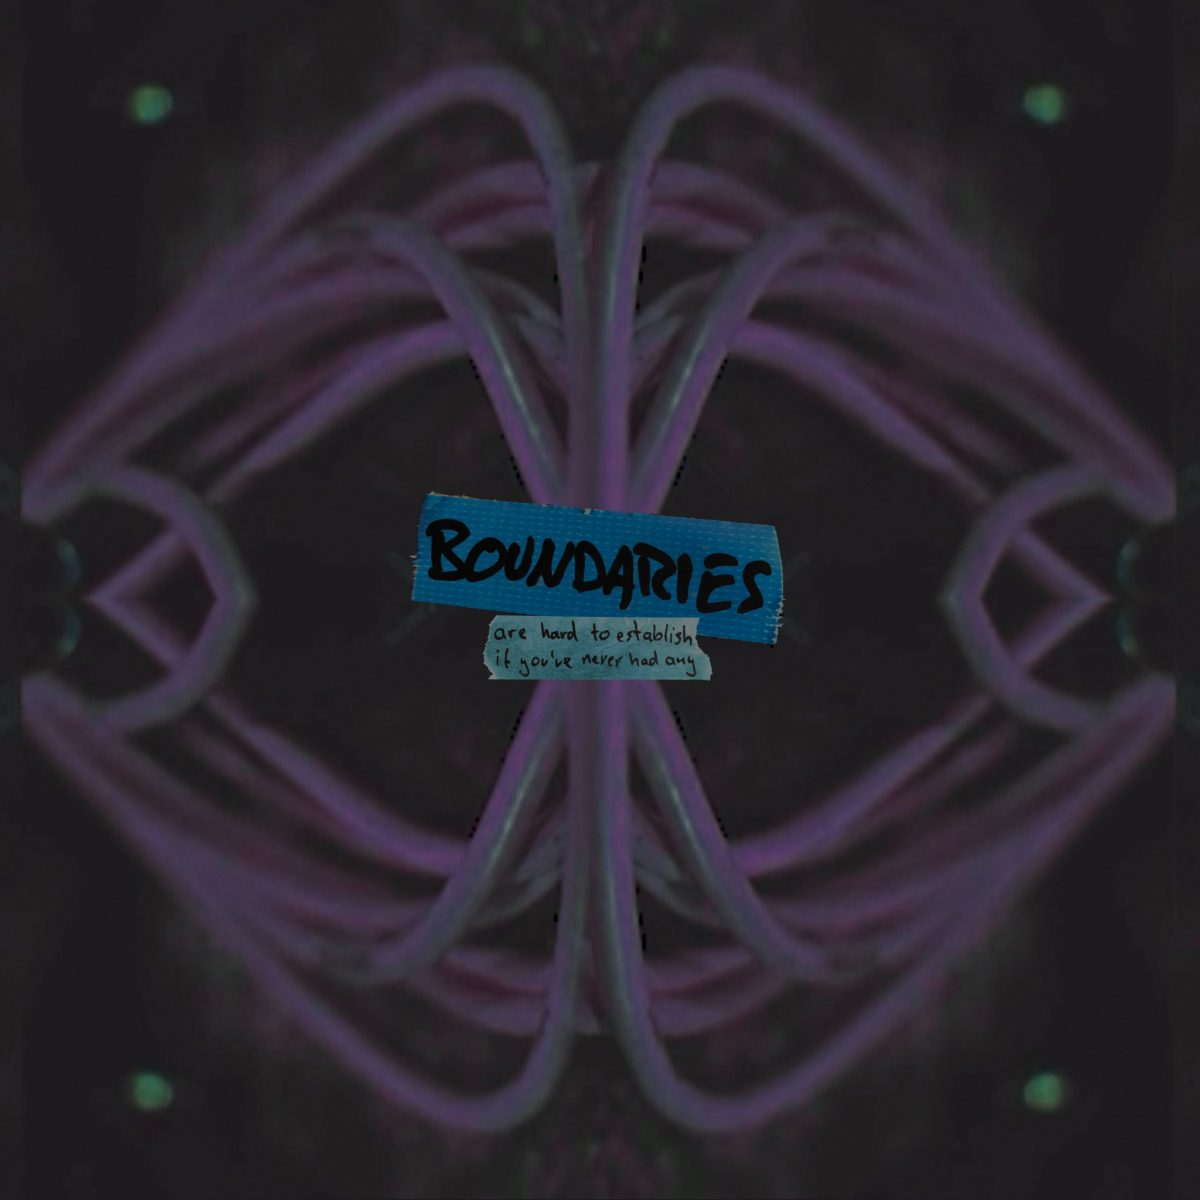 colorwave-boundaries-are-hard-to-establish-if-youve-never-had-any-single-vorstellung